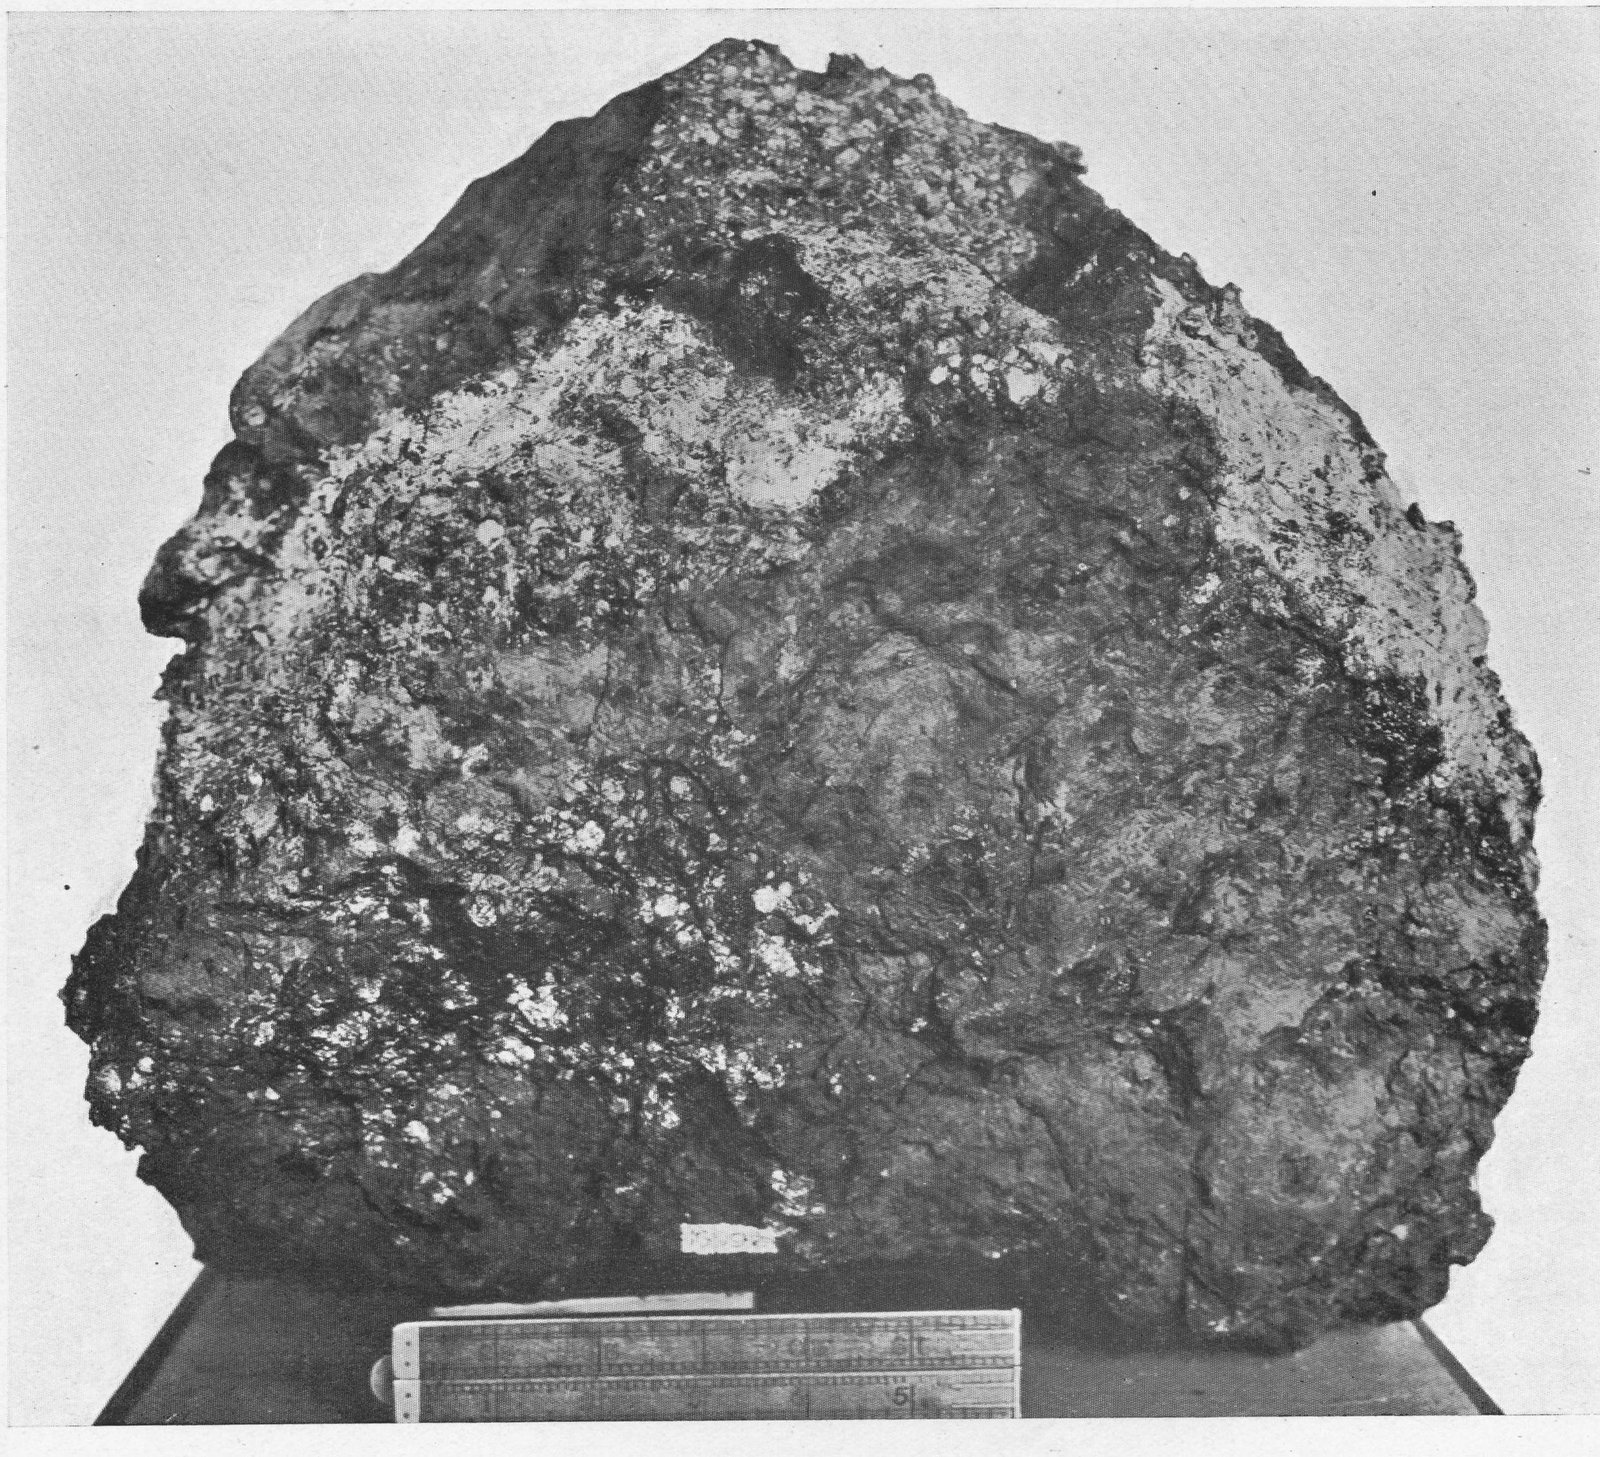 The Molong Meteorite